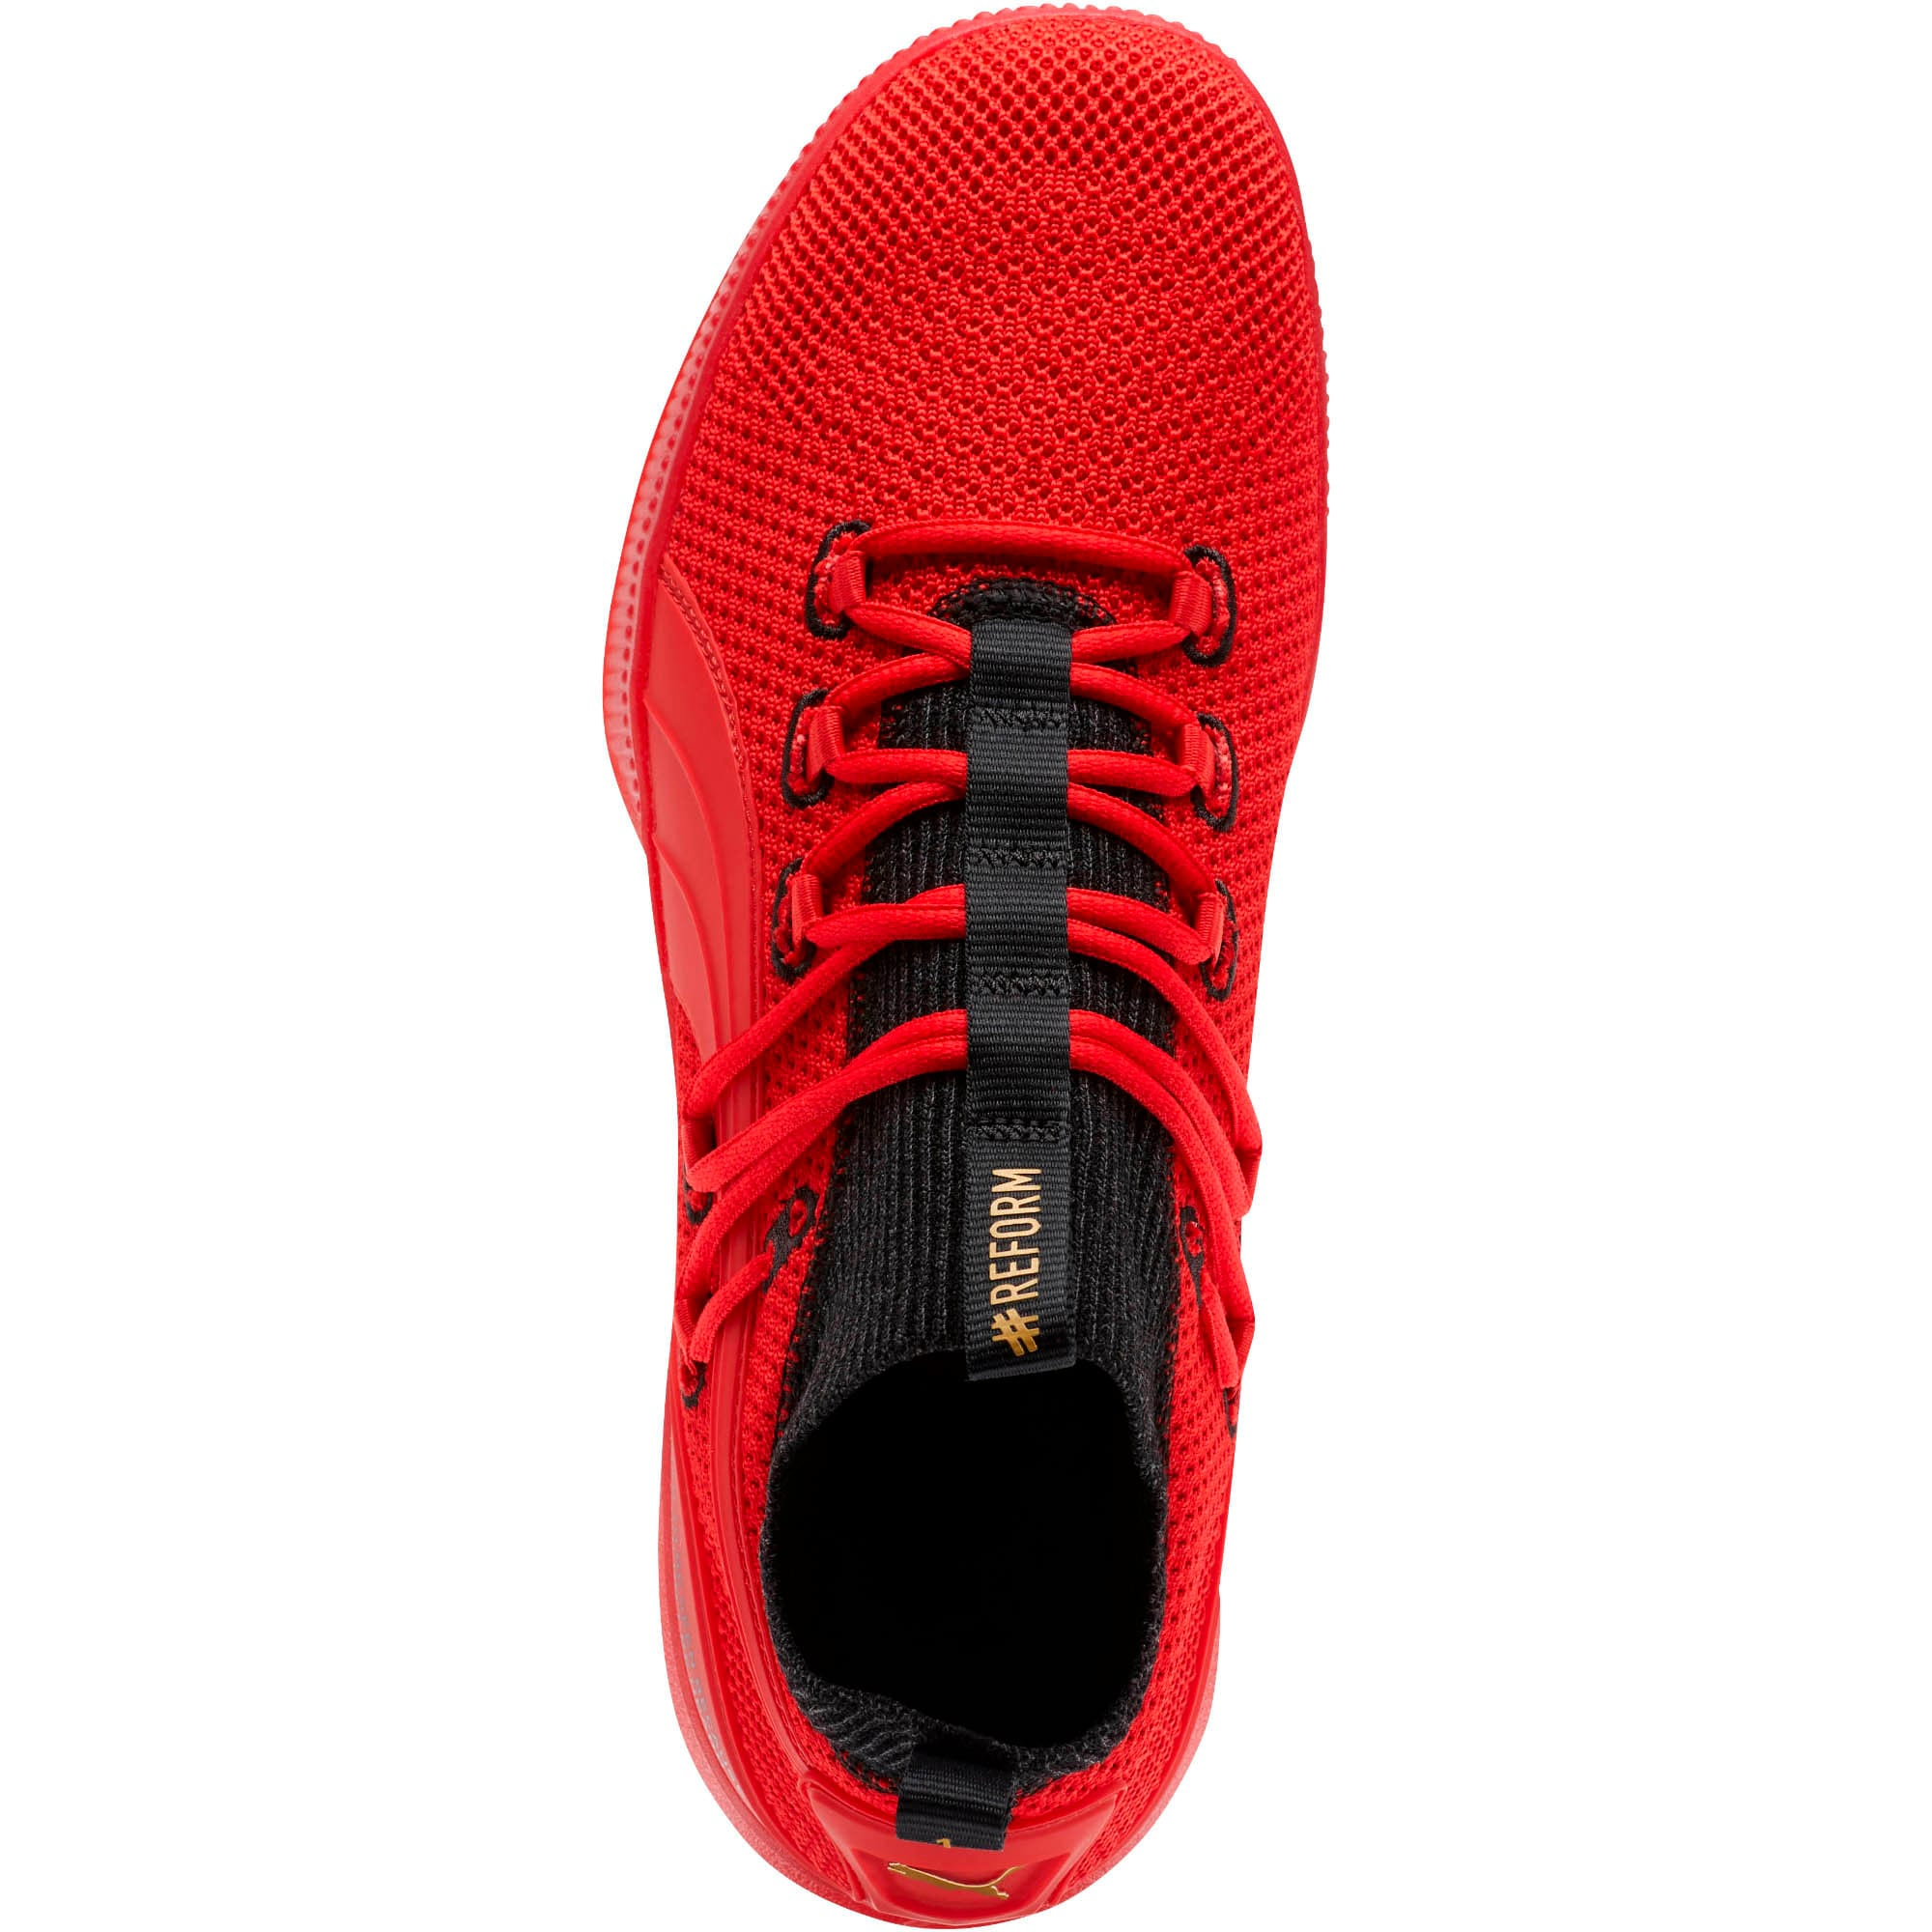 Thumbnail 5 of Clyde Court #REFORM Basketball Shoes, High Risk Red, medium